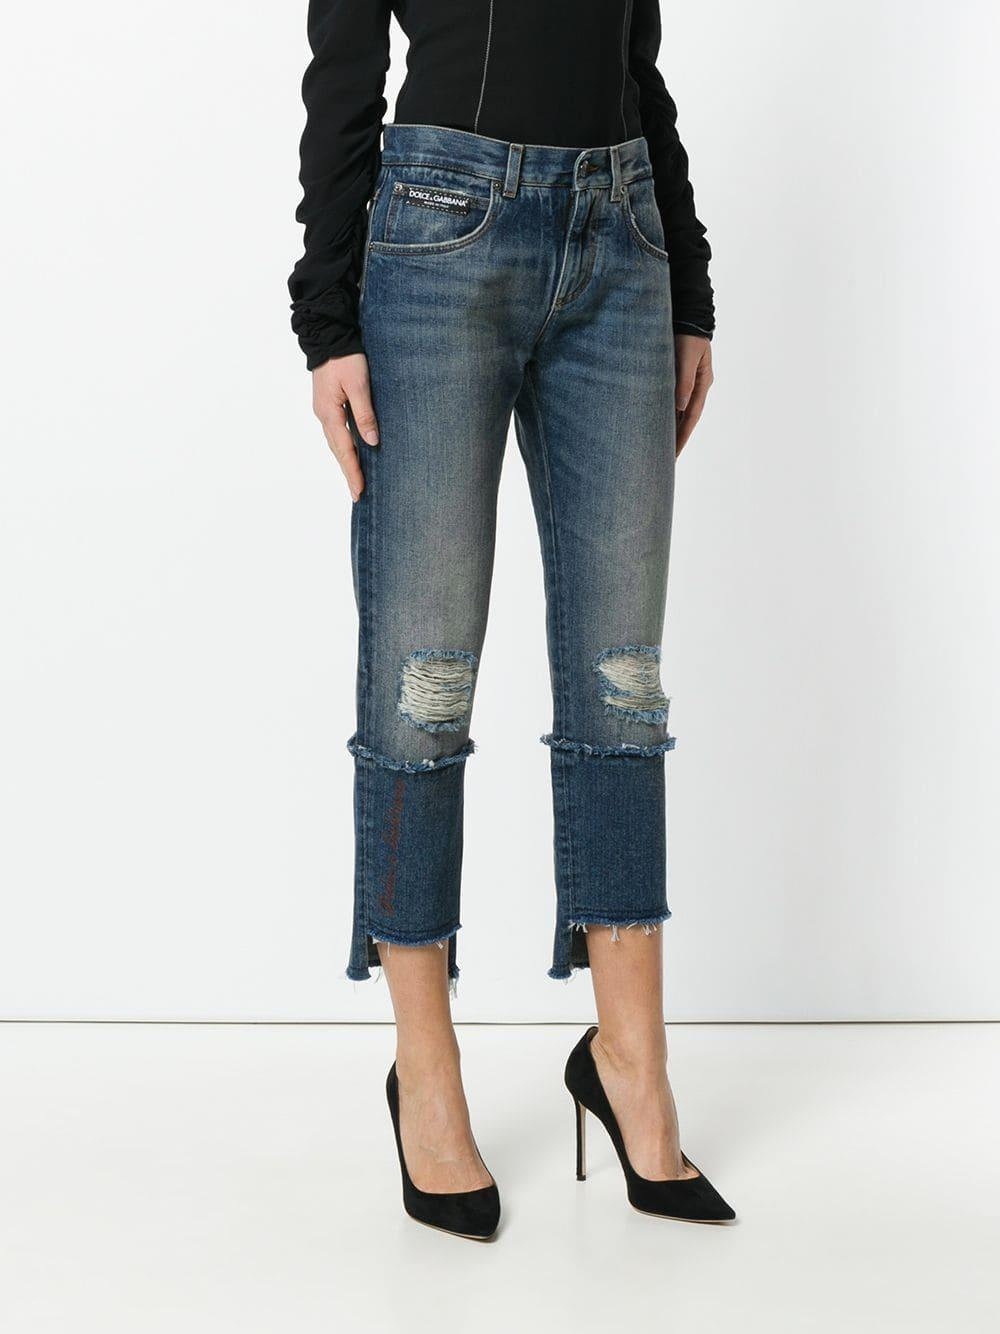 Dolce & Gabbana Cropped Distressed Double Denim Jeans in Blue